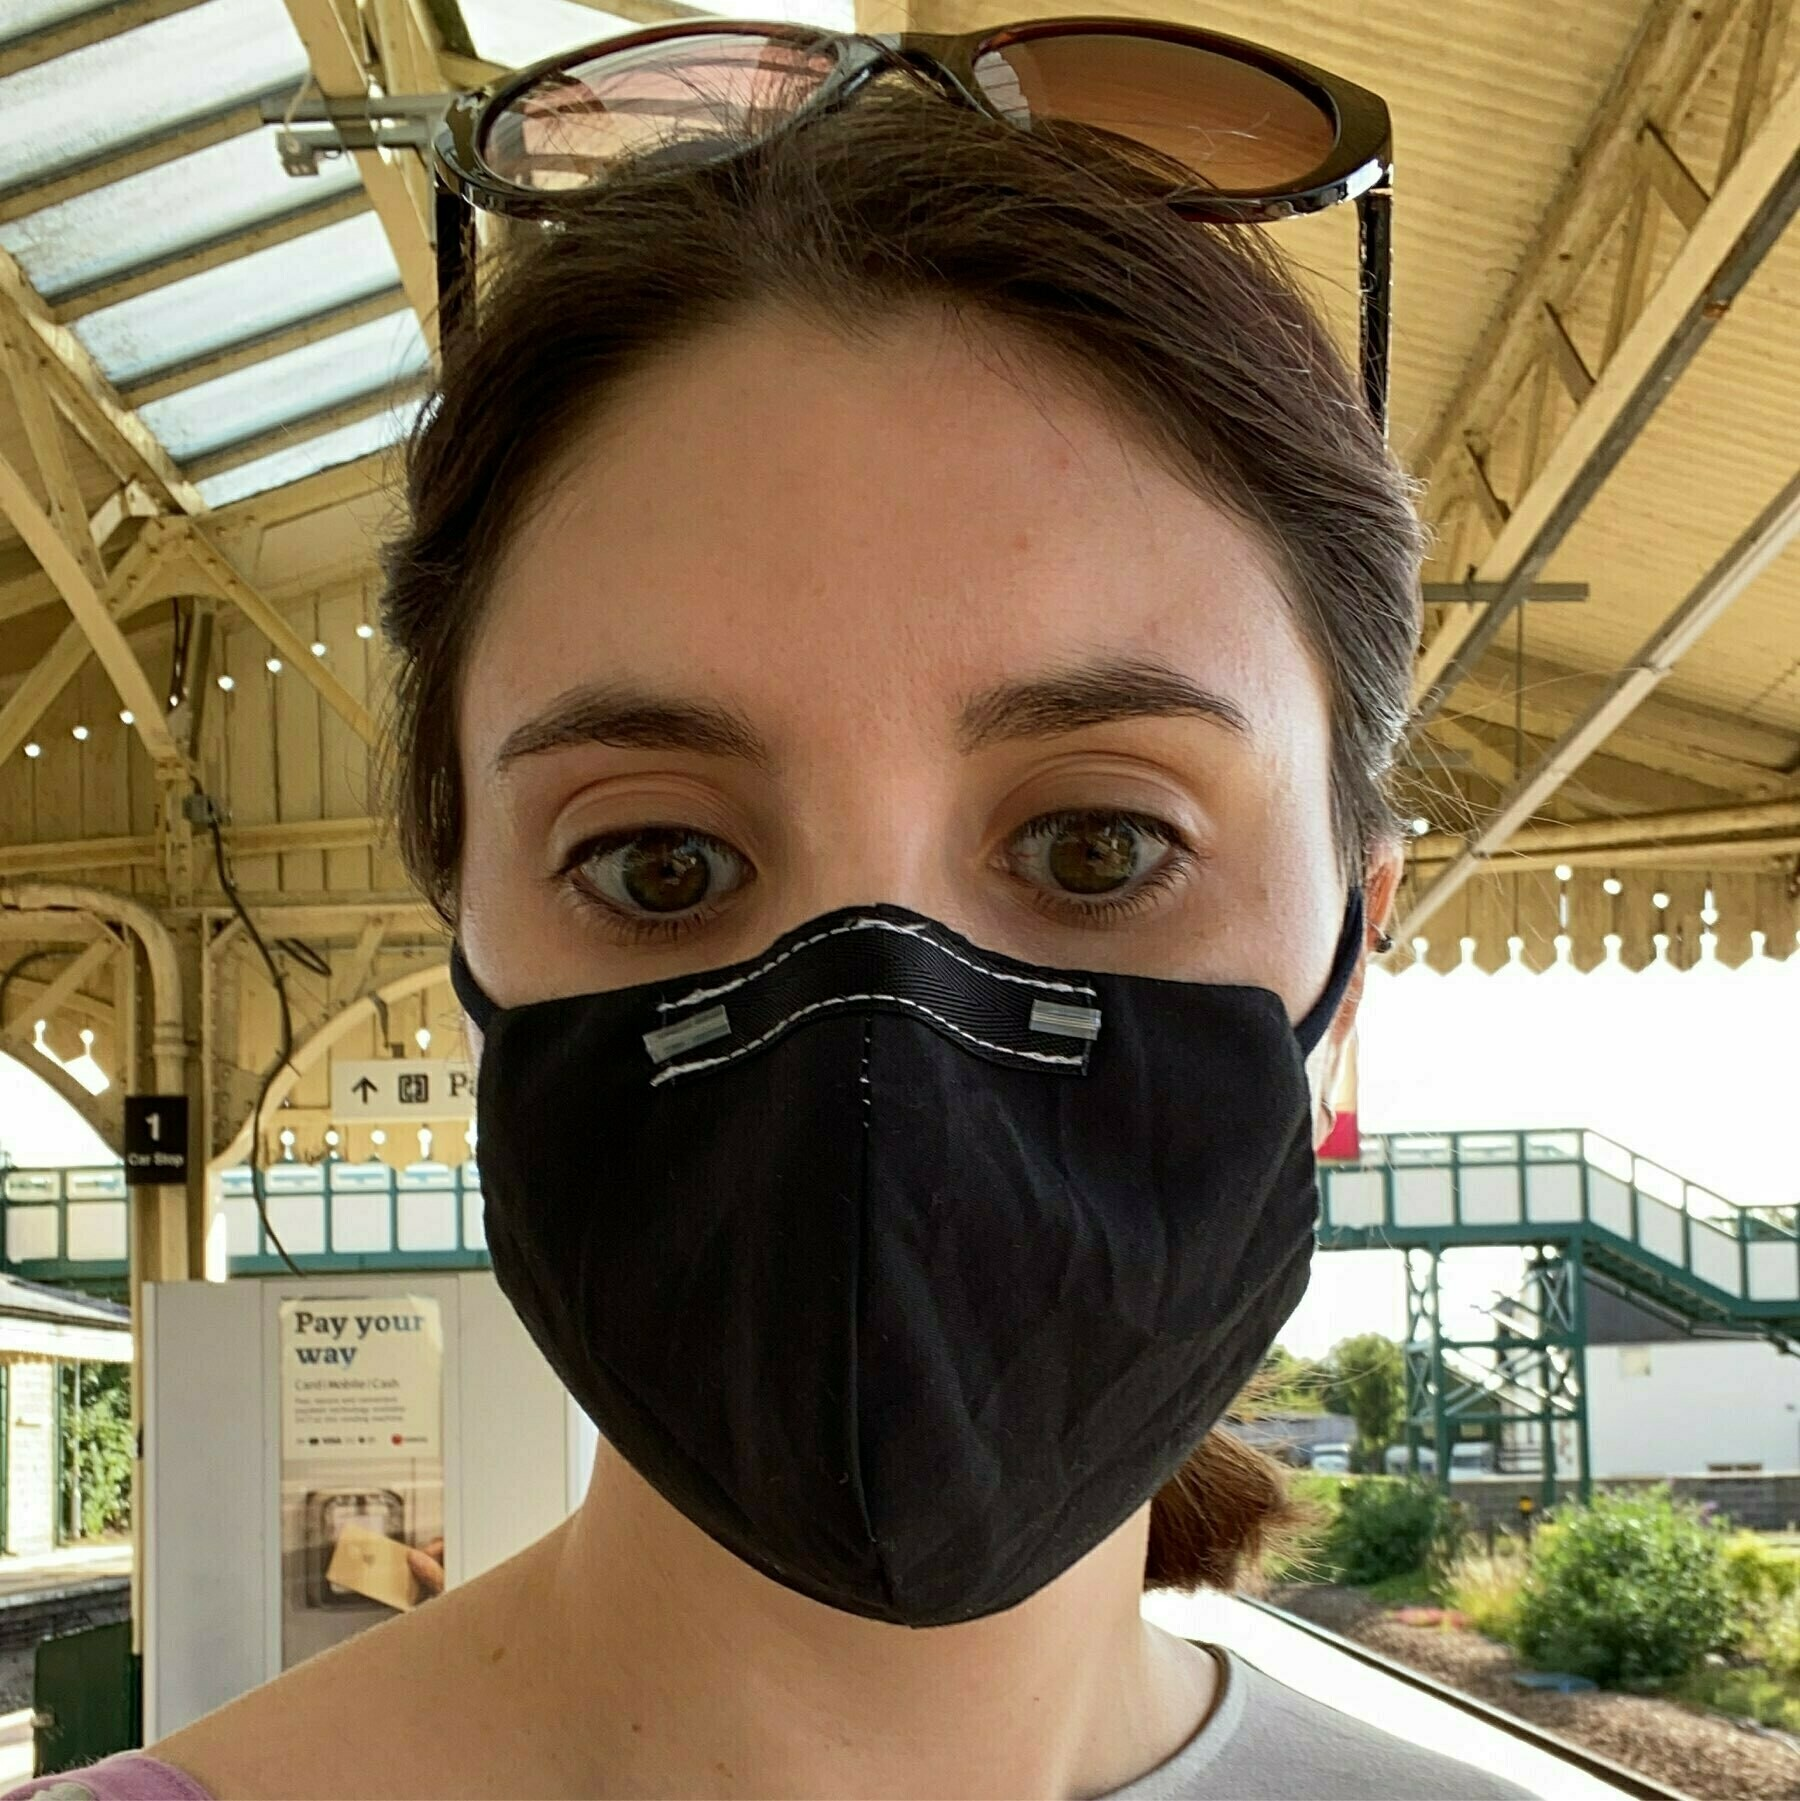 Me, wearing a black fabric mask at a train station